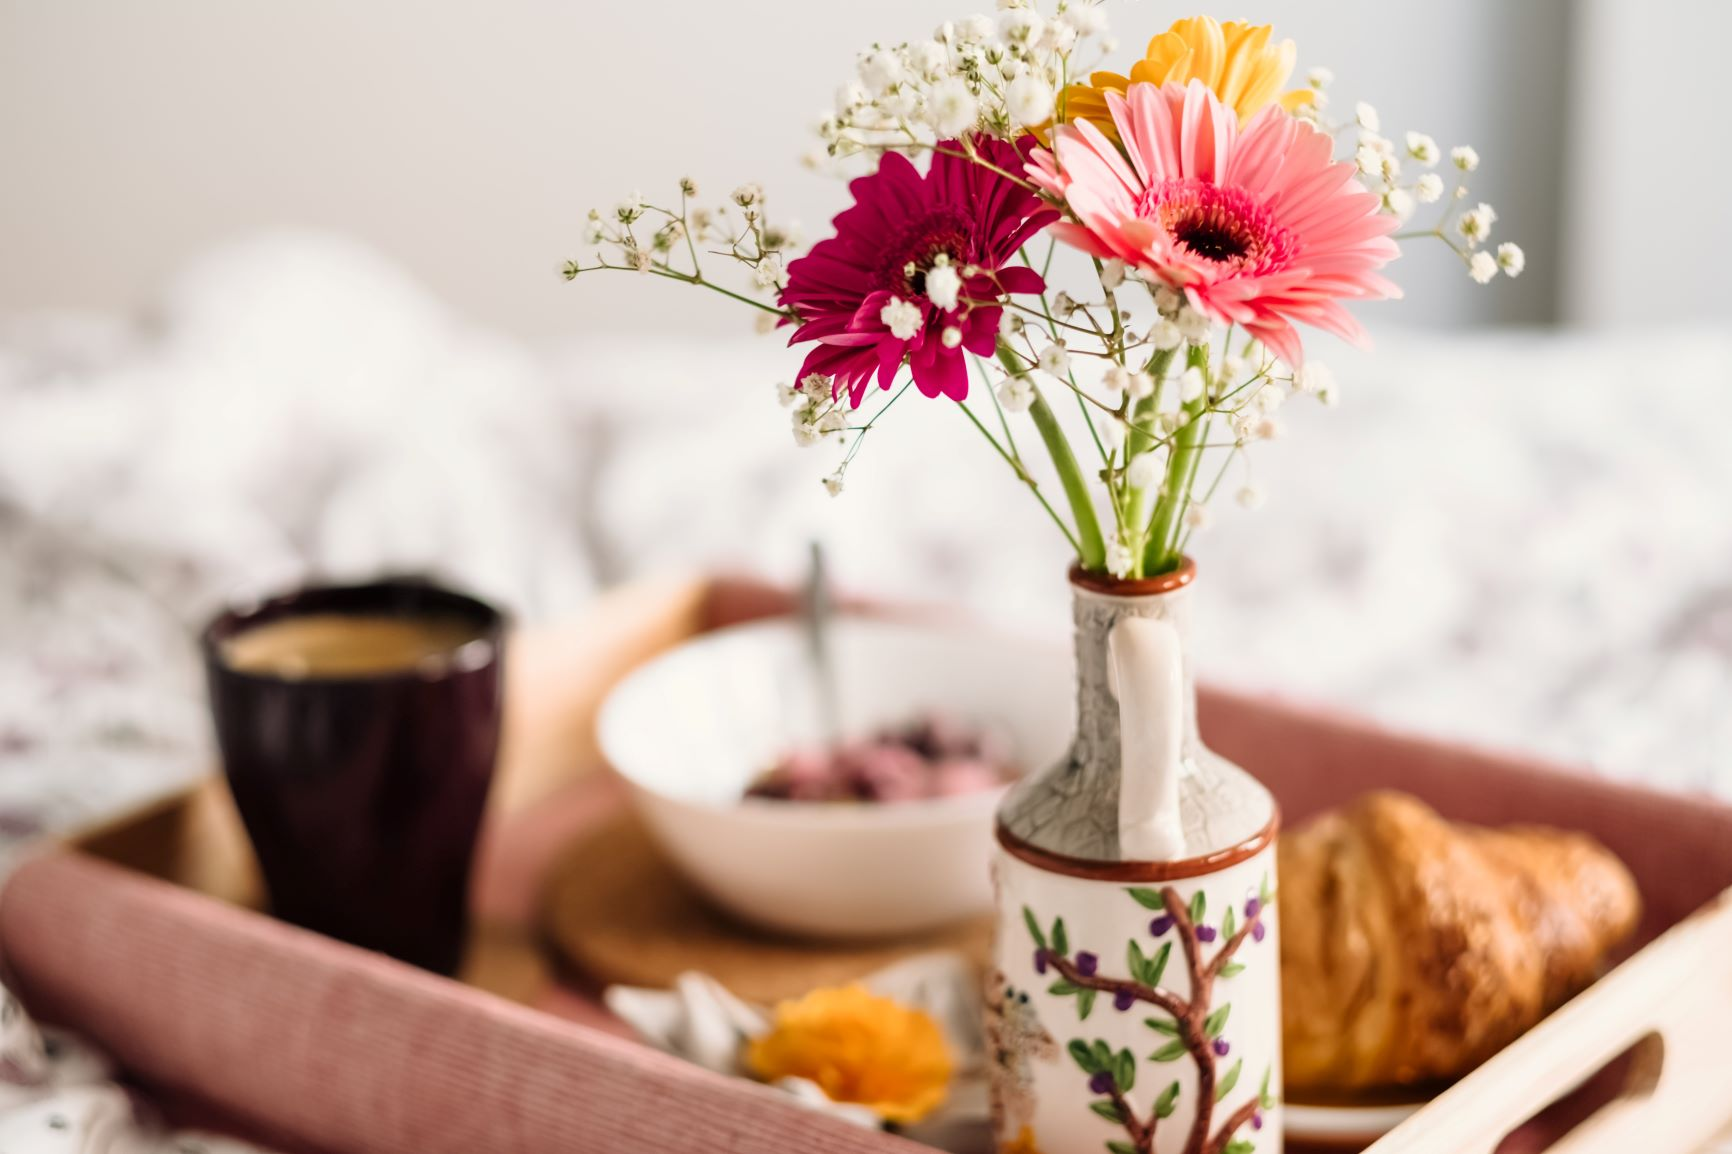 Fun ways to spend mother's day - Breakfast in bed